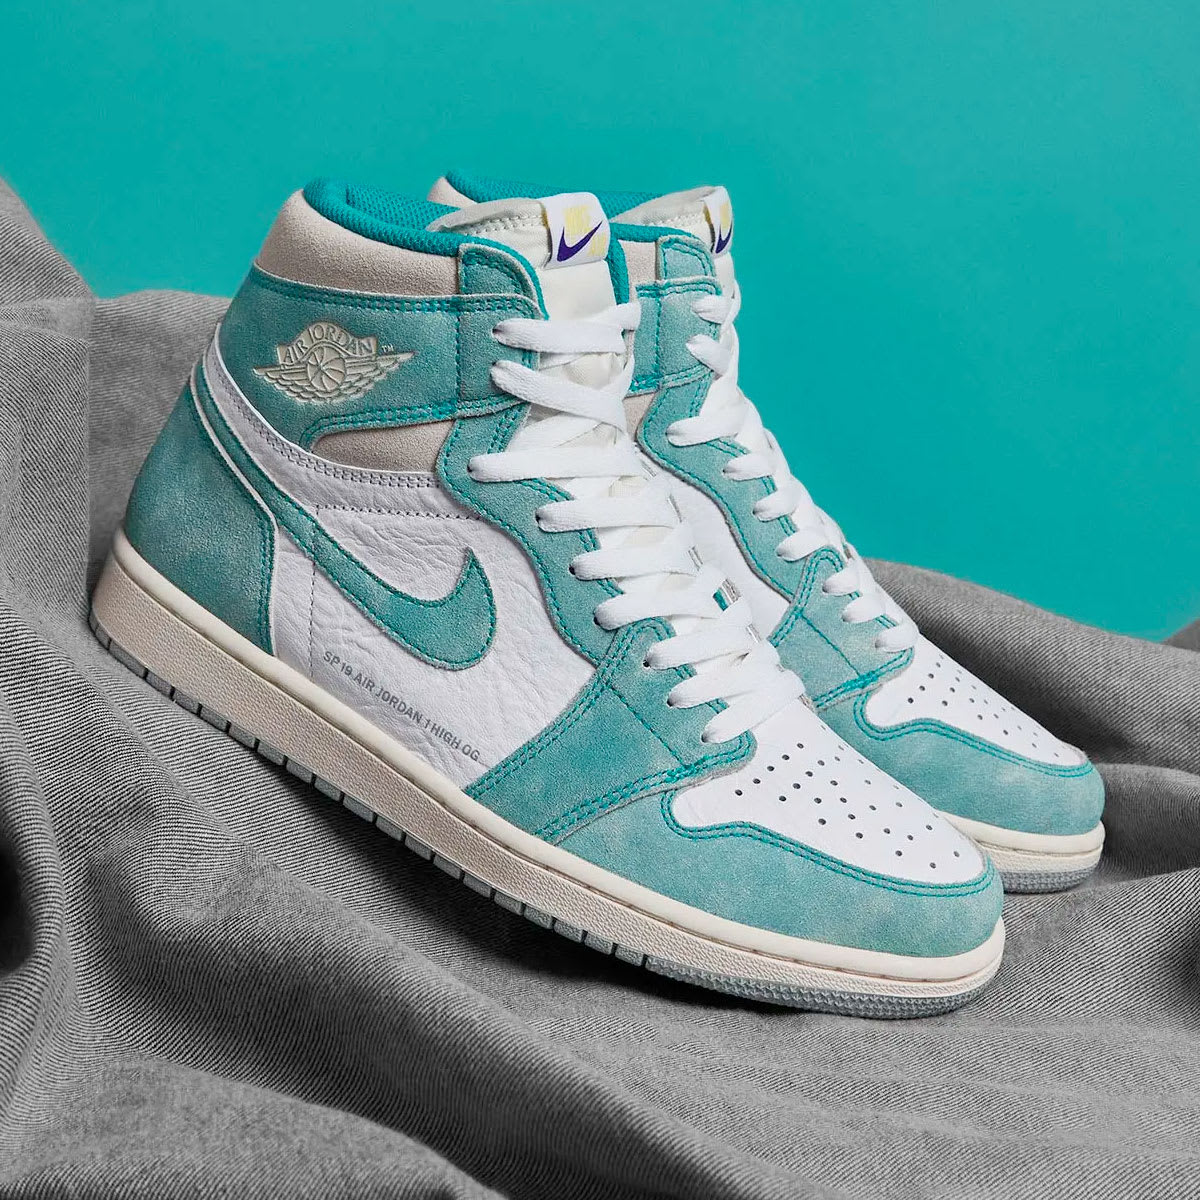 brand new 4a22f 2a50d Features   Nike Air Jordan 1 Retro High OG  Turbo Green  - Register Now on  END. Launches